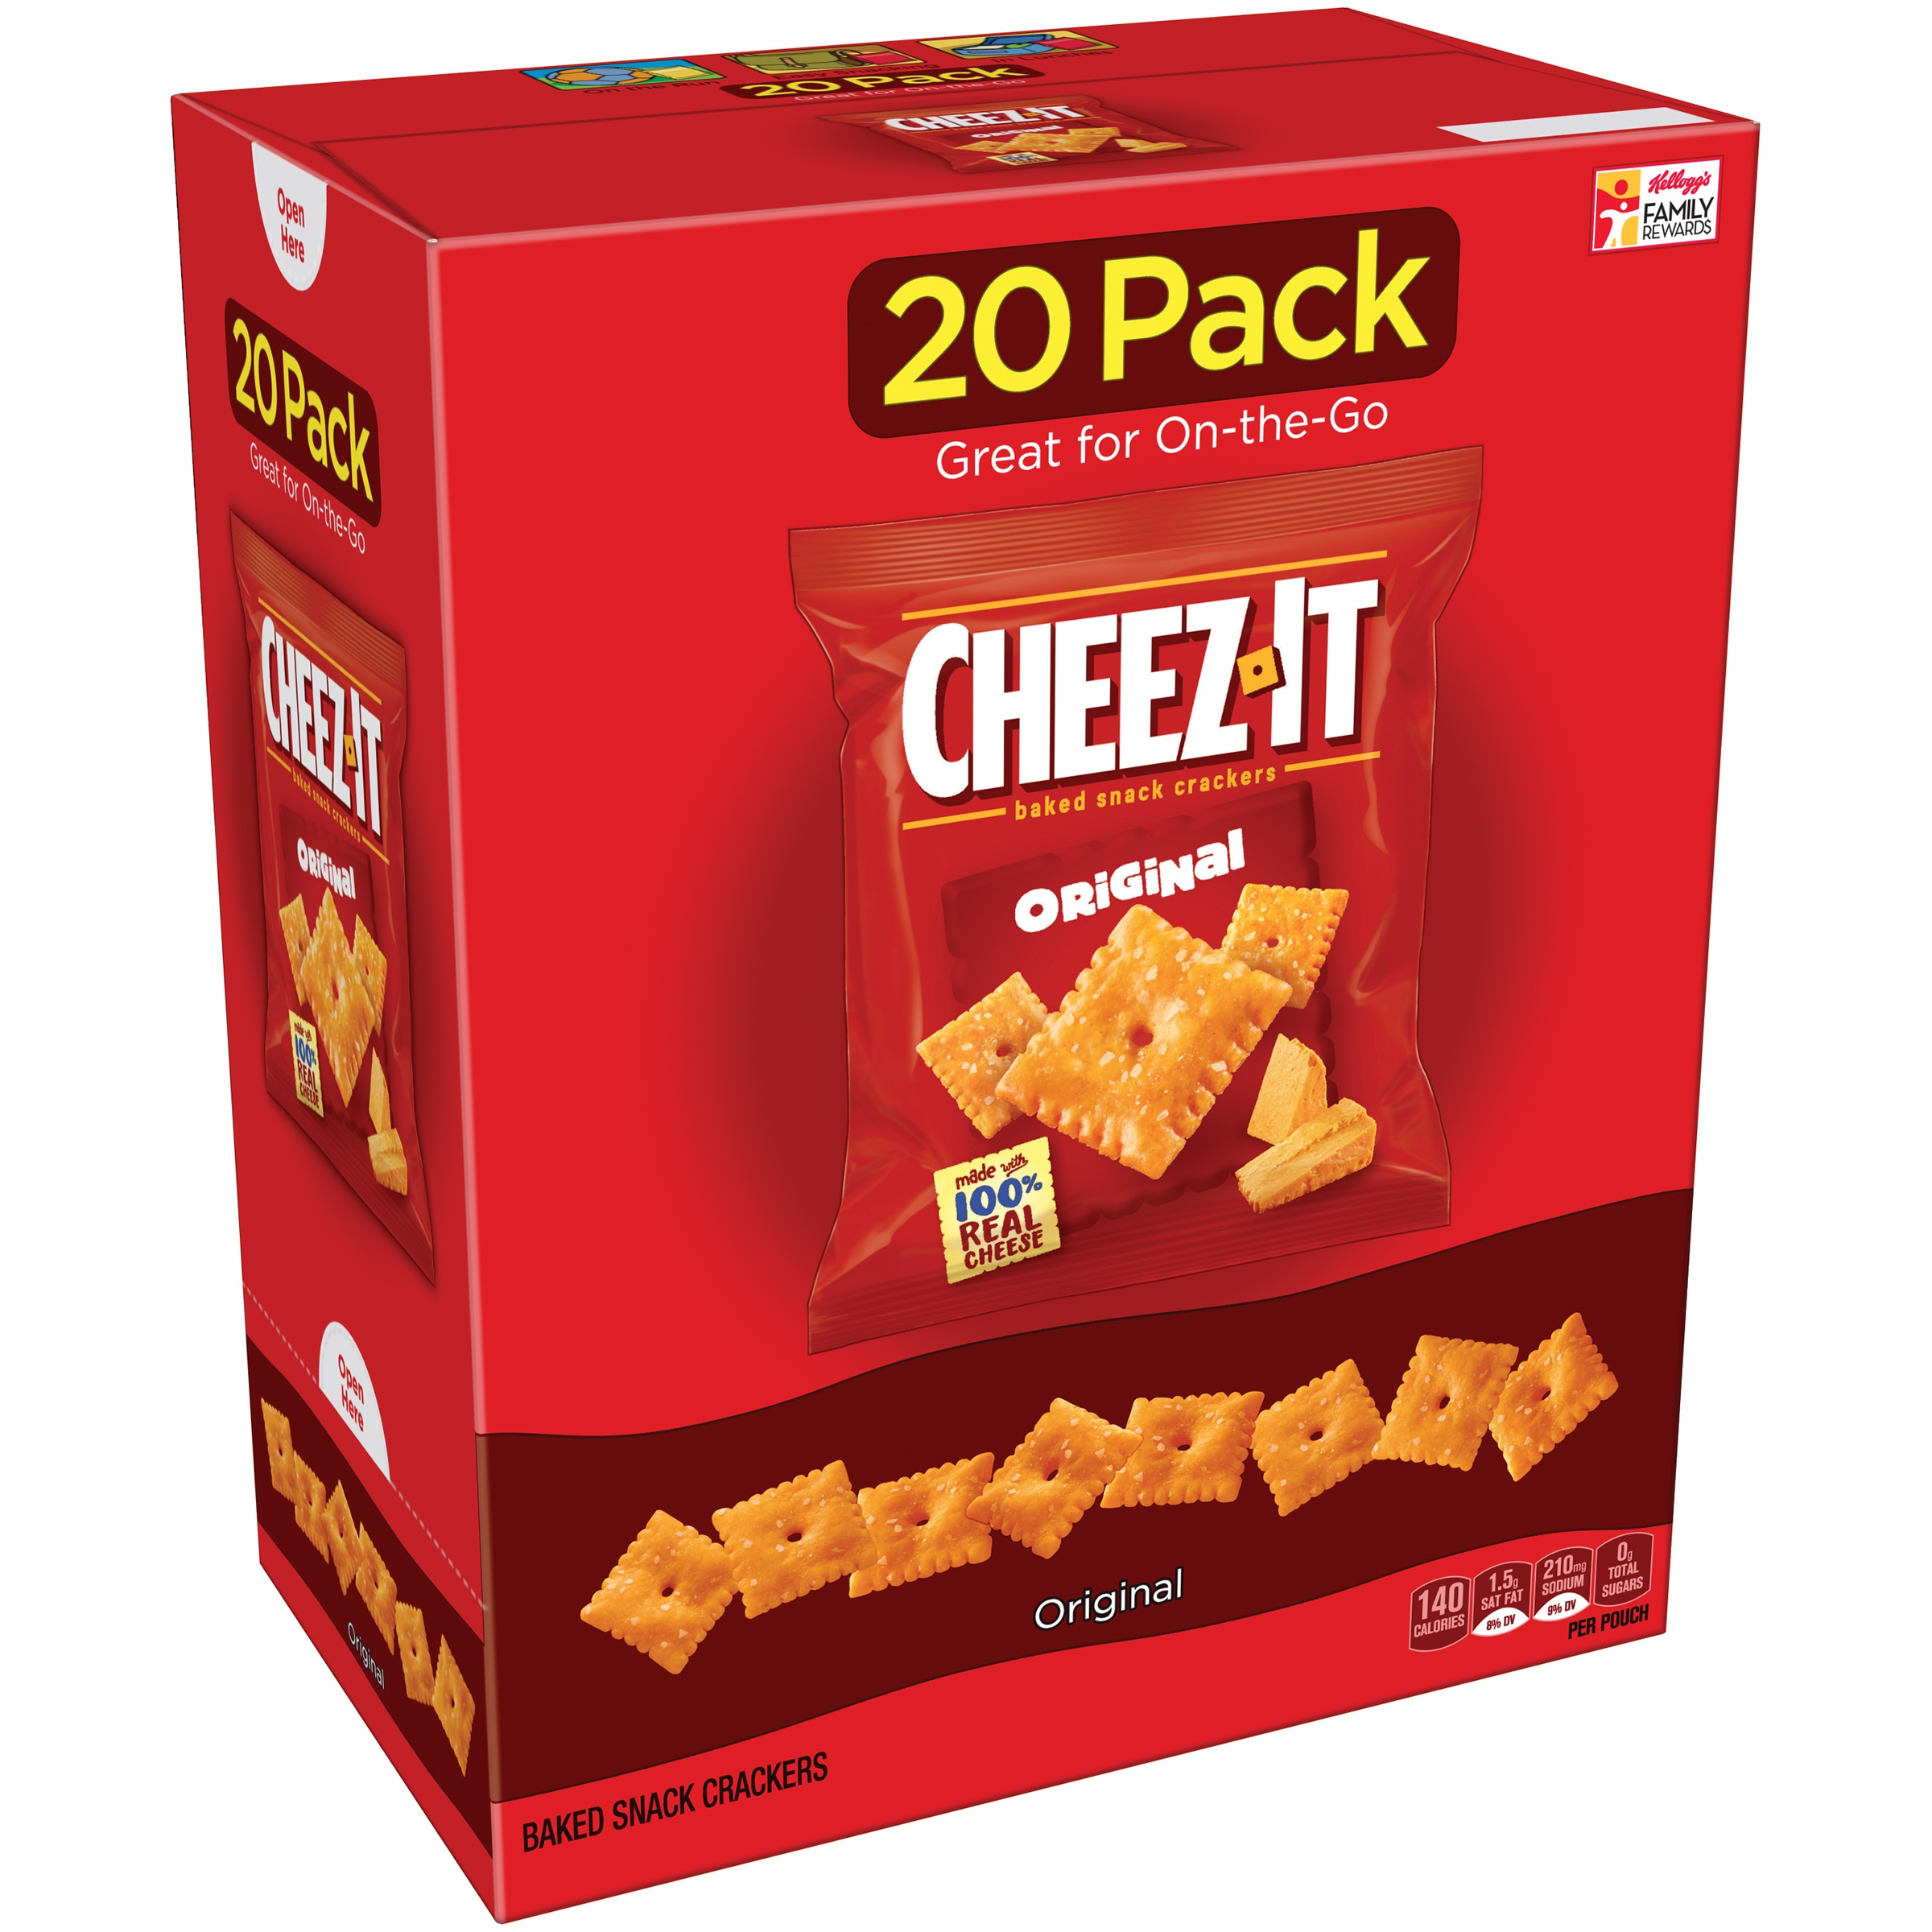 Cheez-It Baked Snack Crackers, Original, 1 Oz. Pk, 20 Ct by Sunshine Biscuits, LLC